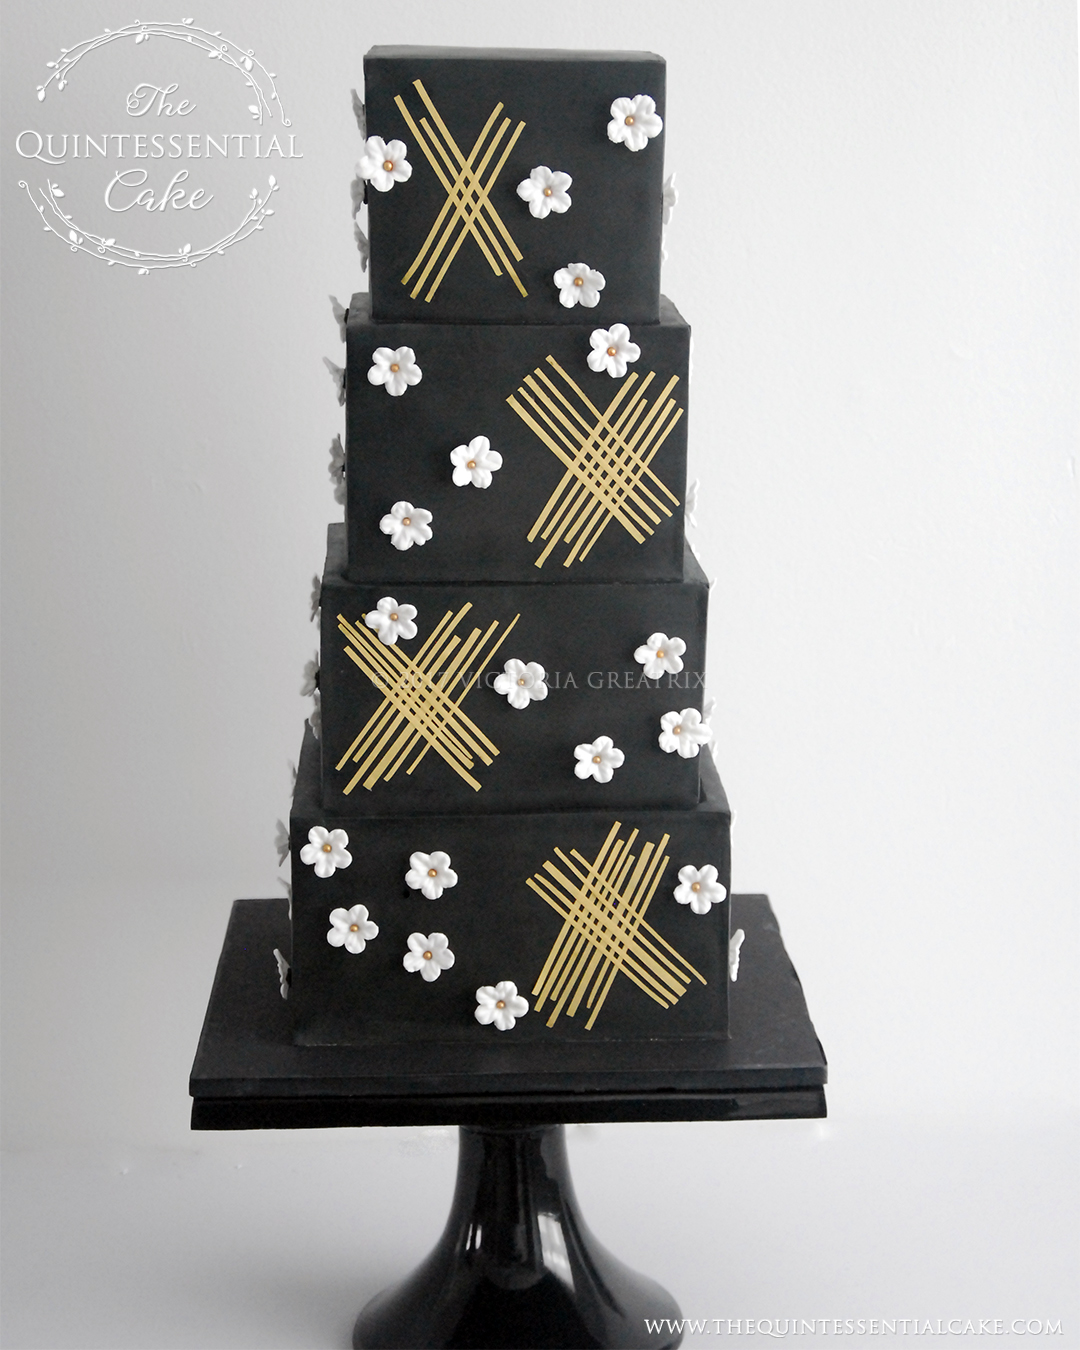 TQC Black Geometric with White Blossoms | The Quintessential Cake | Chicago | Luxury Wedding Cakes | Moreton Arboretum